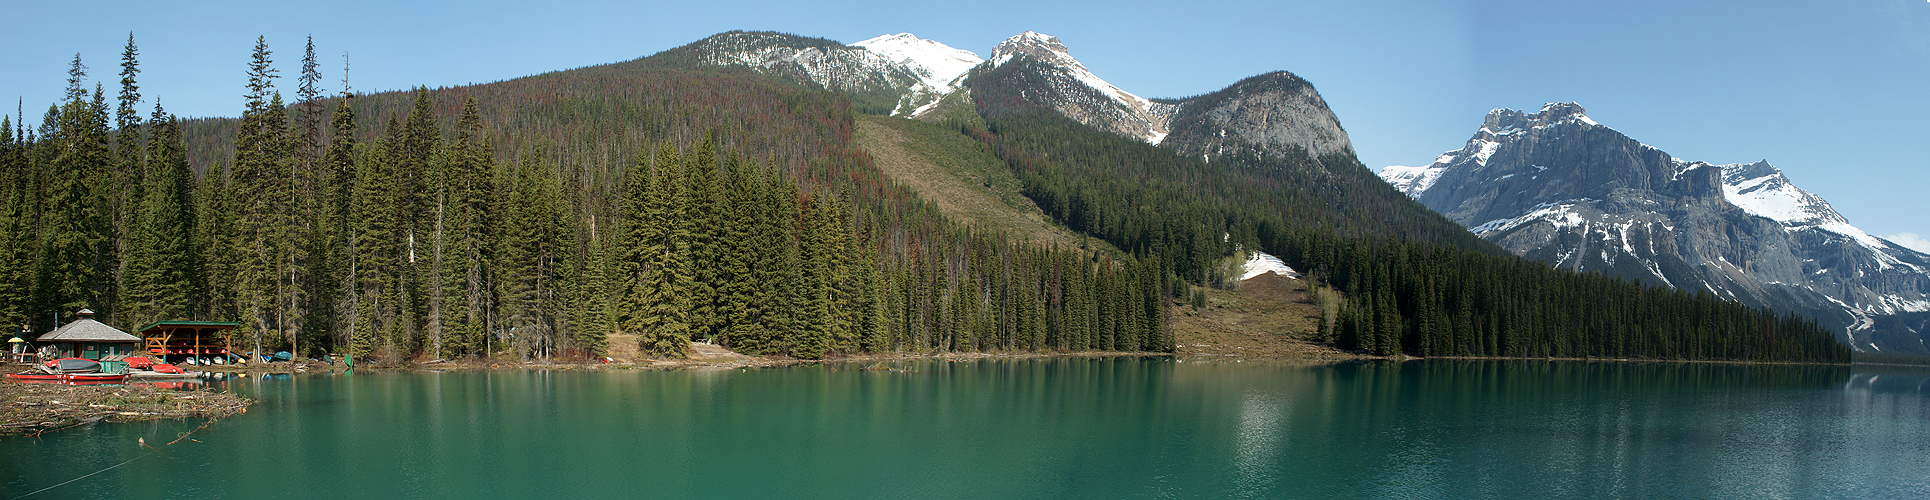 Photo panoramique du lac Emerald (Yoho)